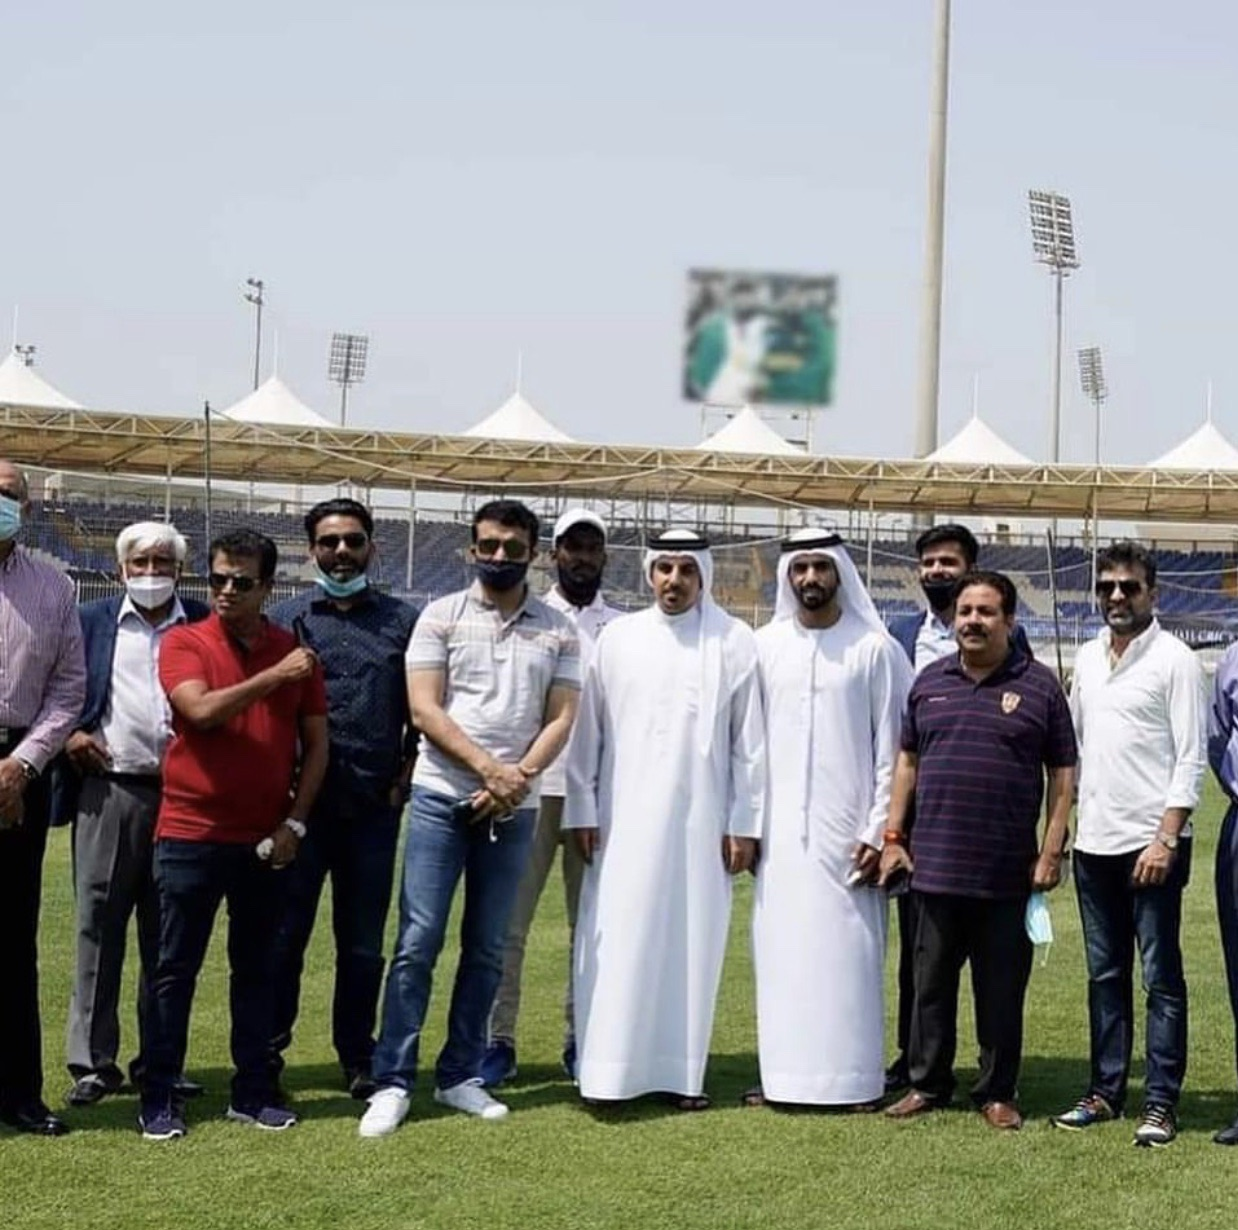 Sourav Ganguly on visit to Sharjah stadium and the blurred photo in background | Instagram